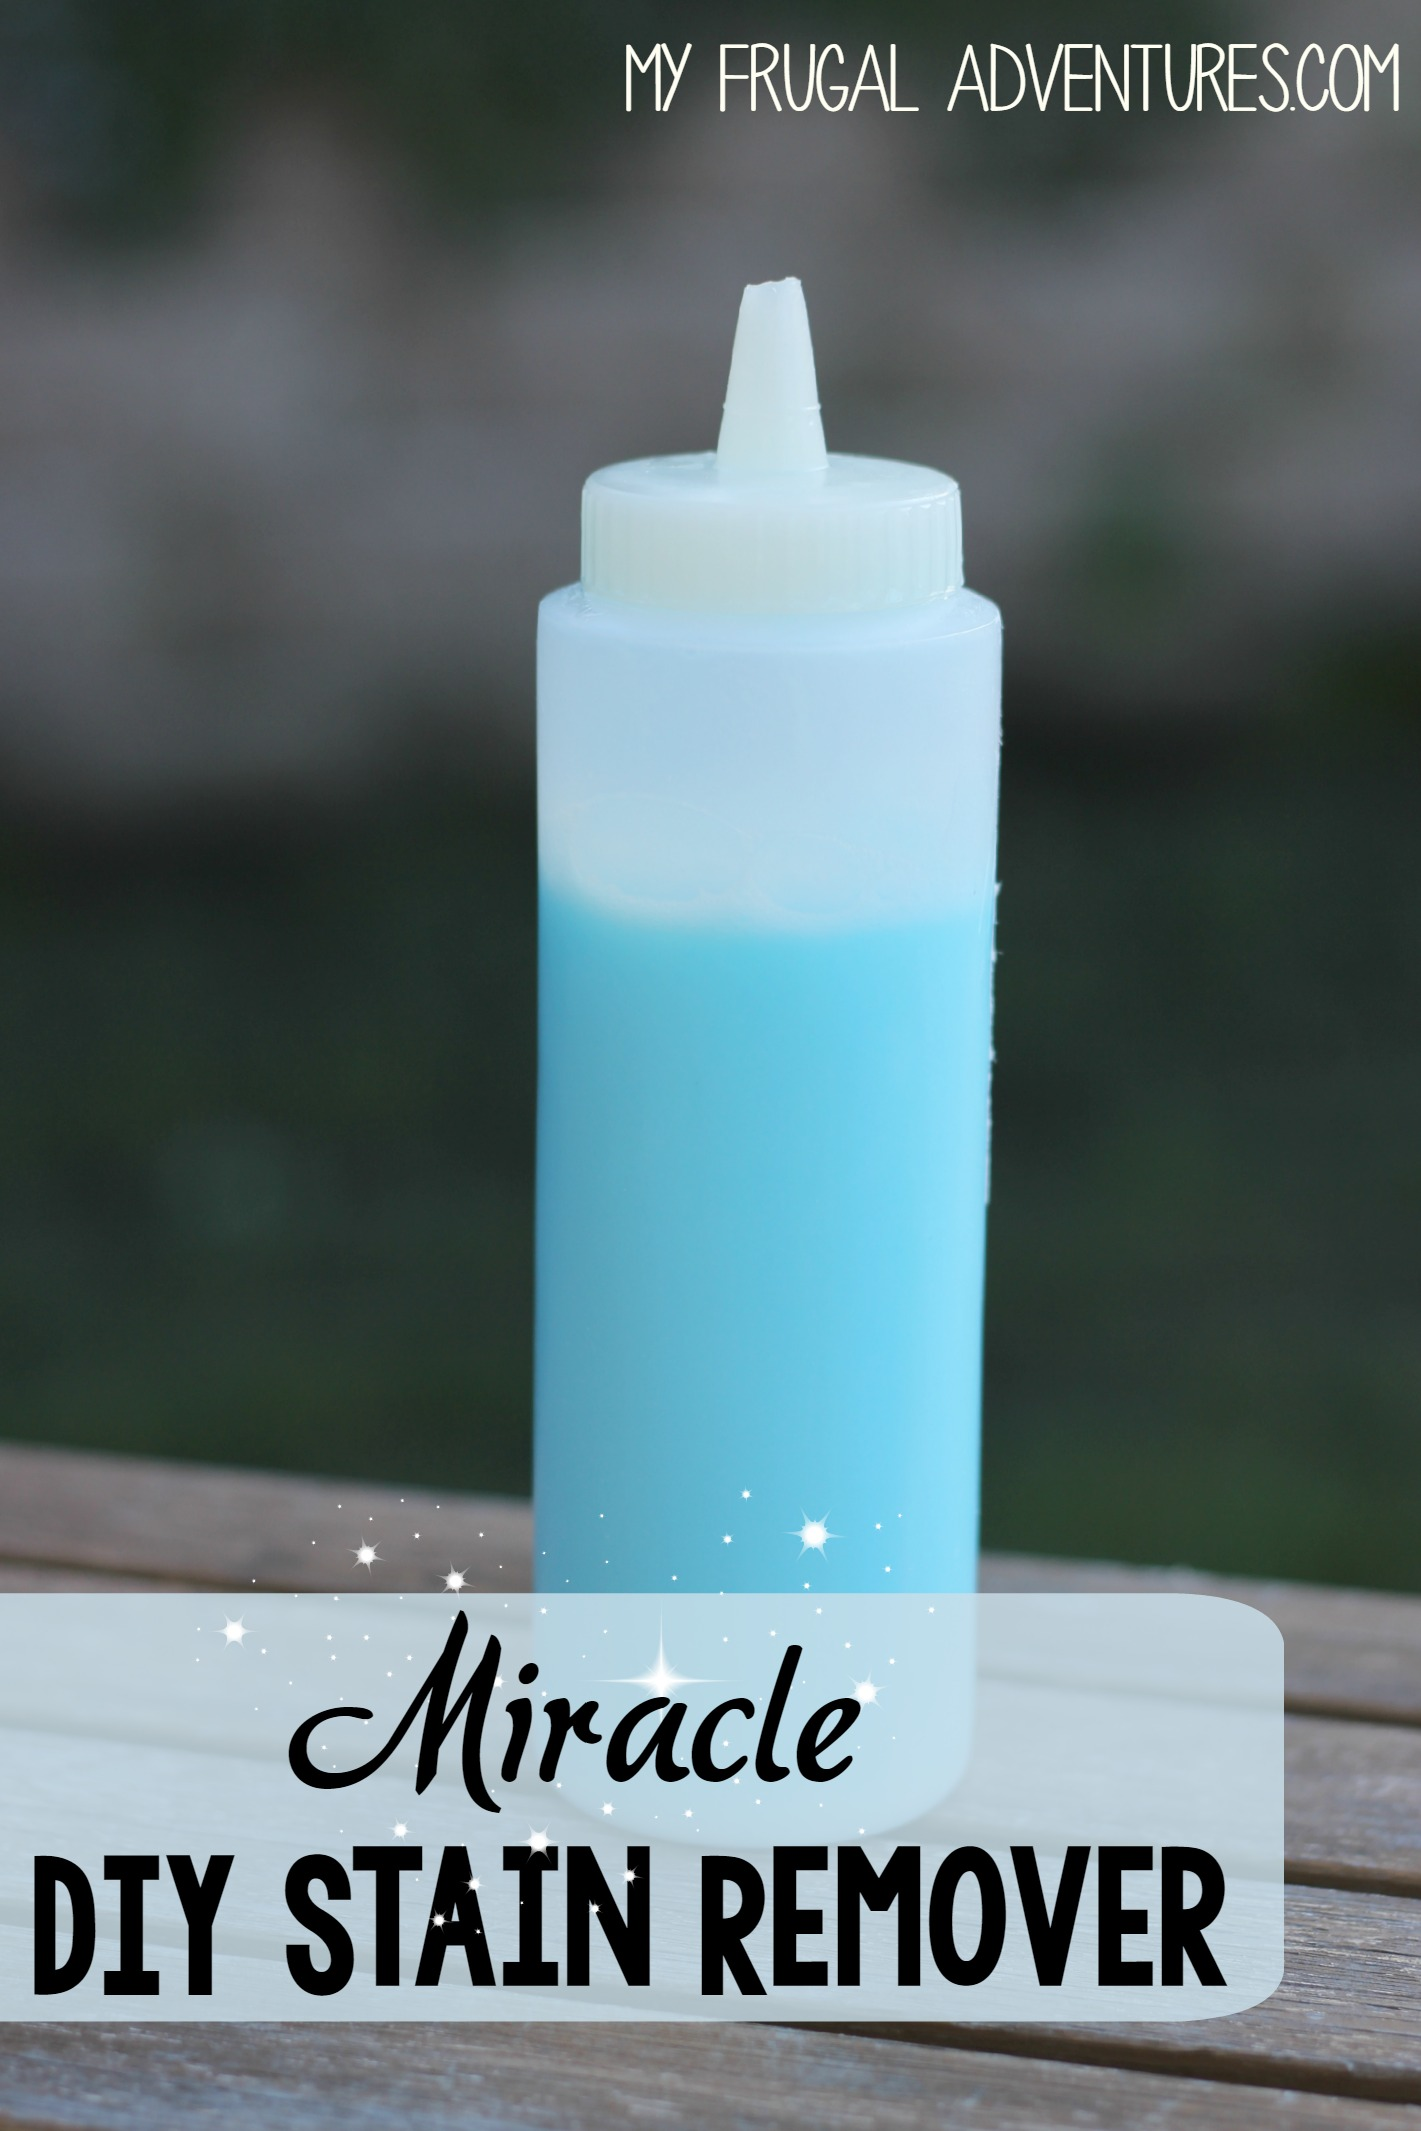 DIY Stain Remover {Removes Almost Any Stain!} - My Frugal ...